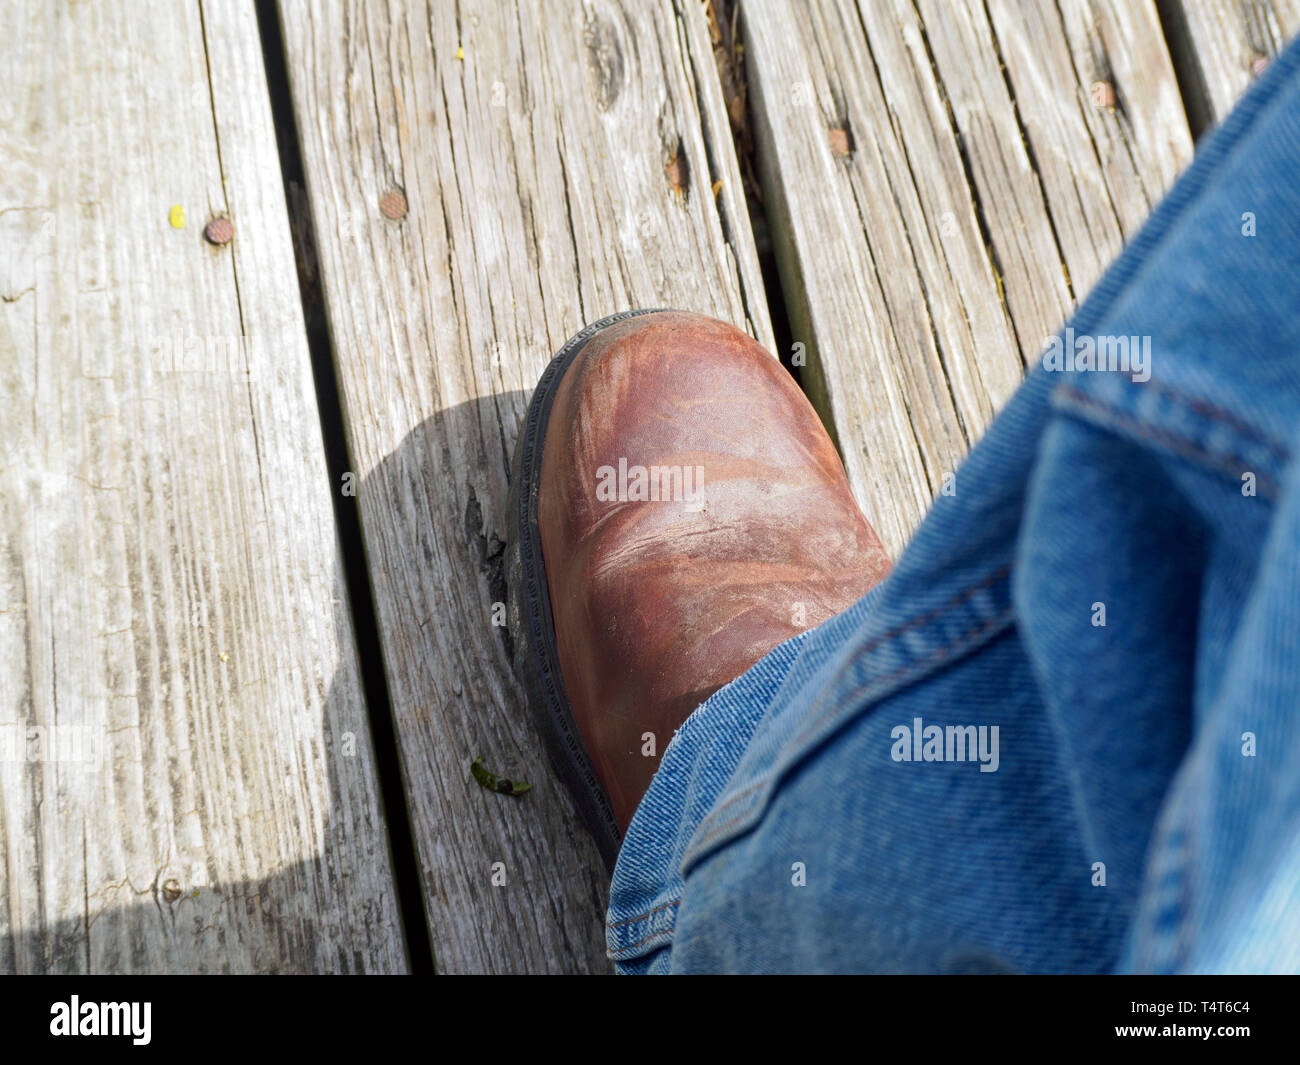 A scuffed brown leather boot with blue jeans on weathered wooden deck, view from above - Stock Image